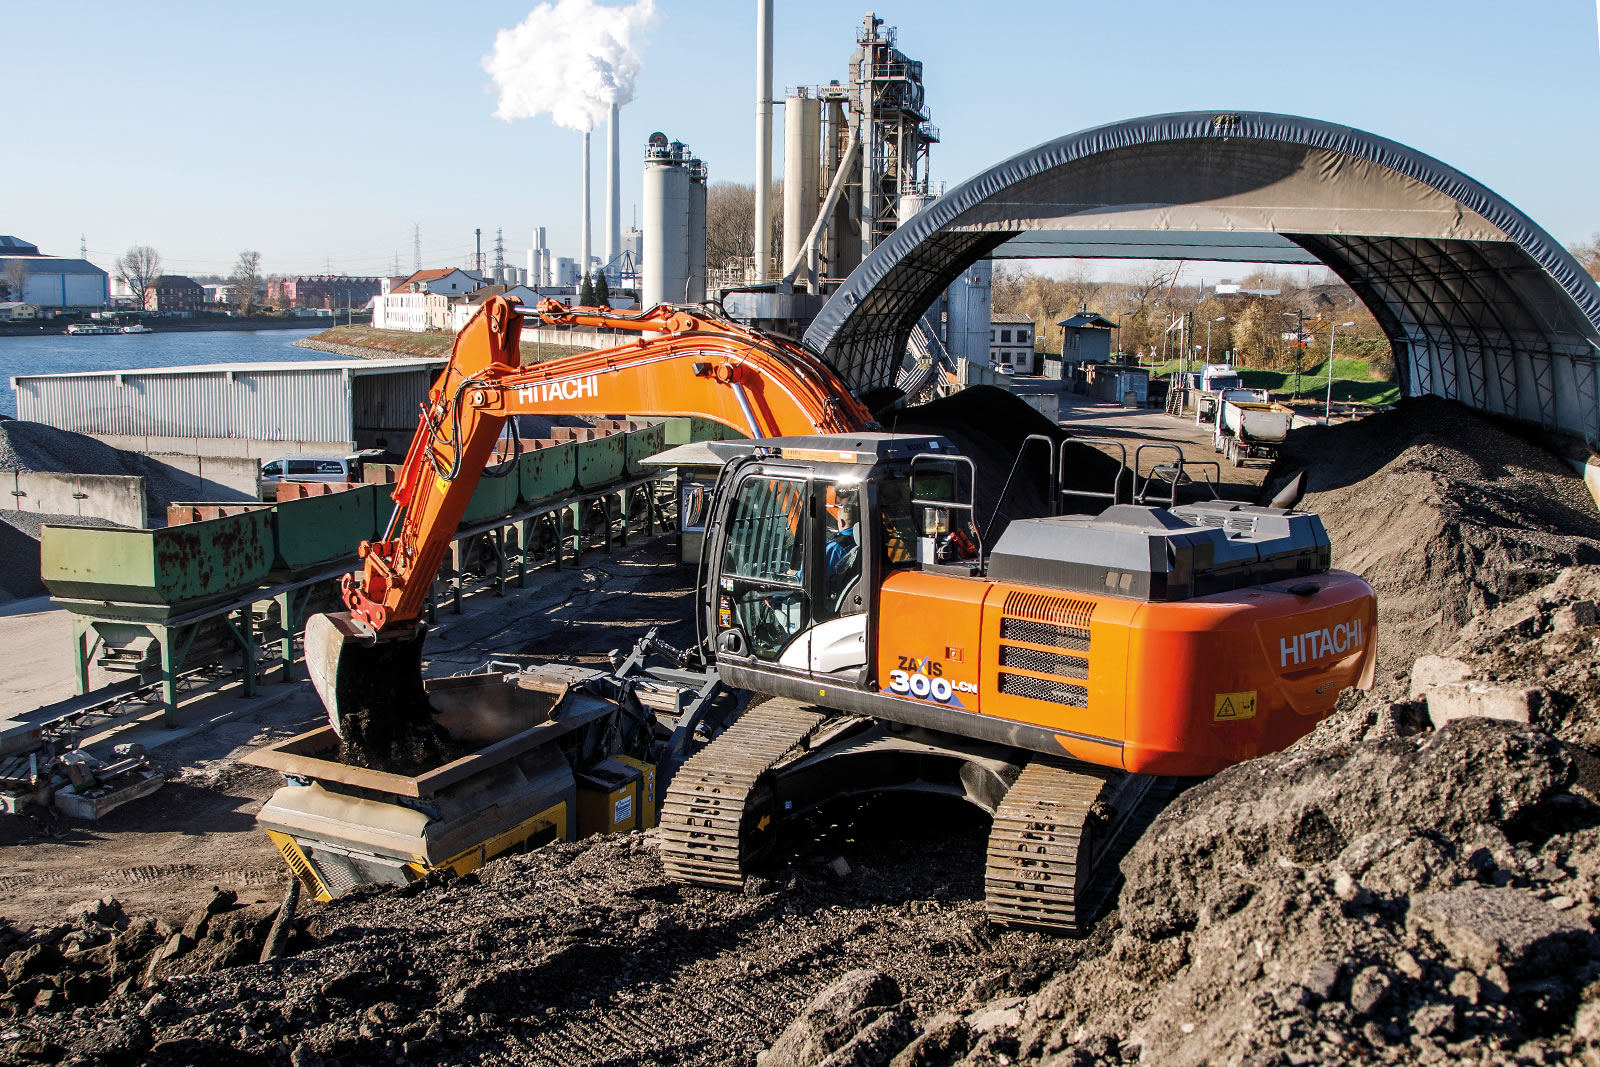 Hitachi ZX300LCN-6 excavator excavating for Fred Walther Baggerbetrieb